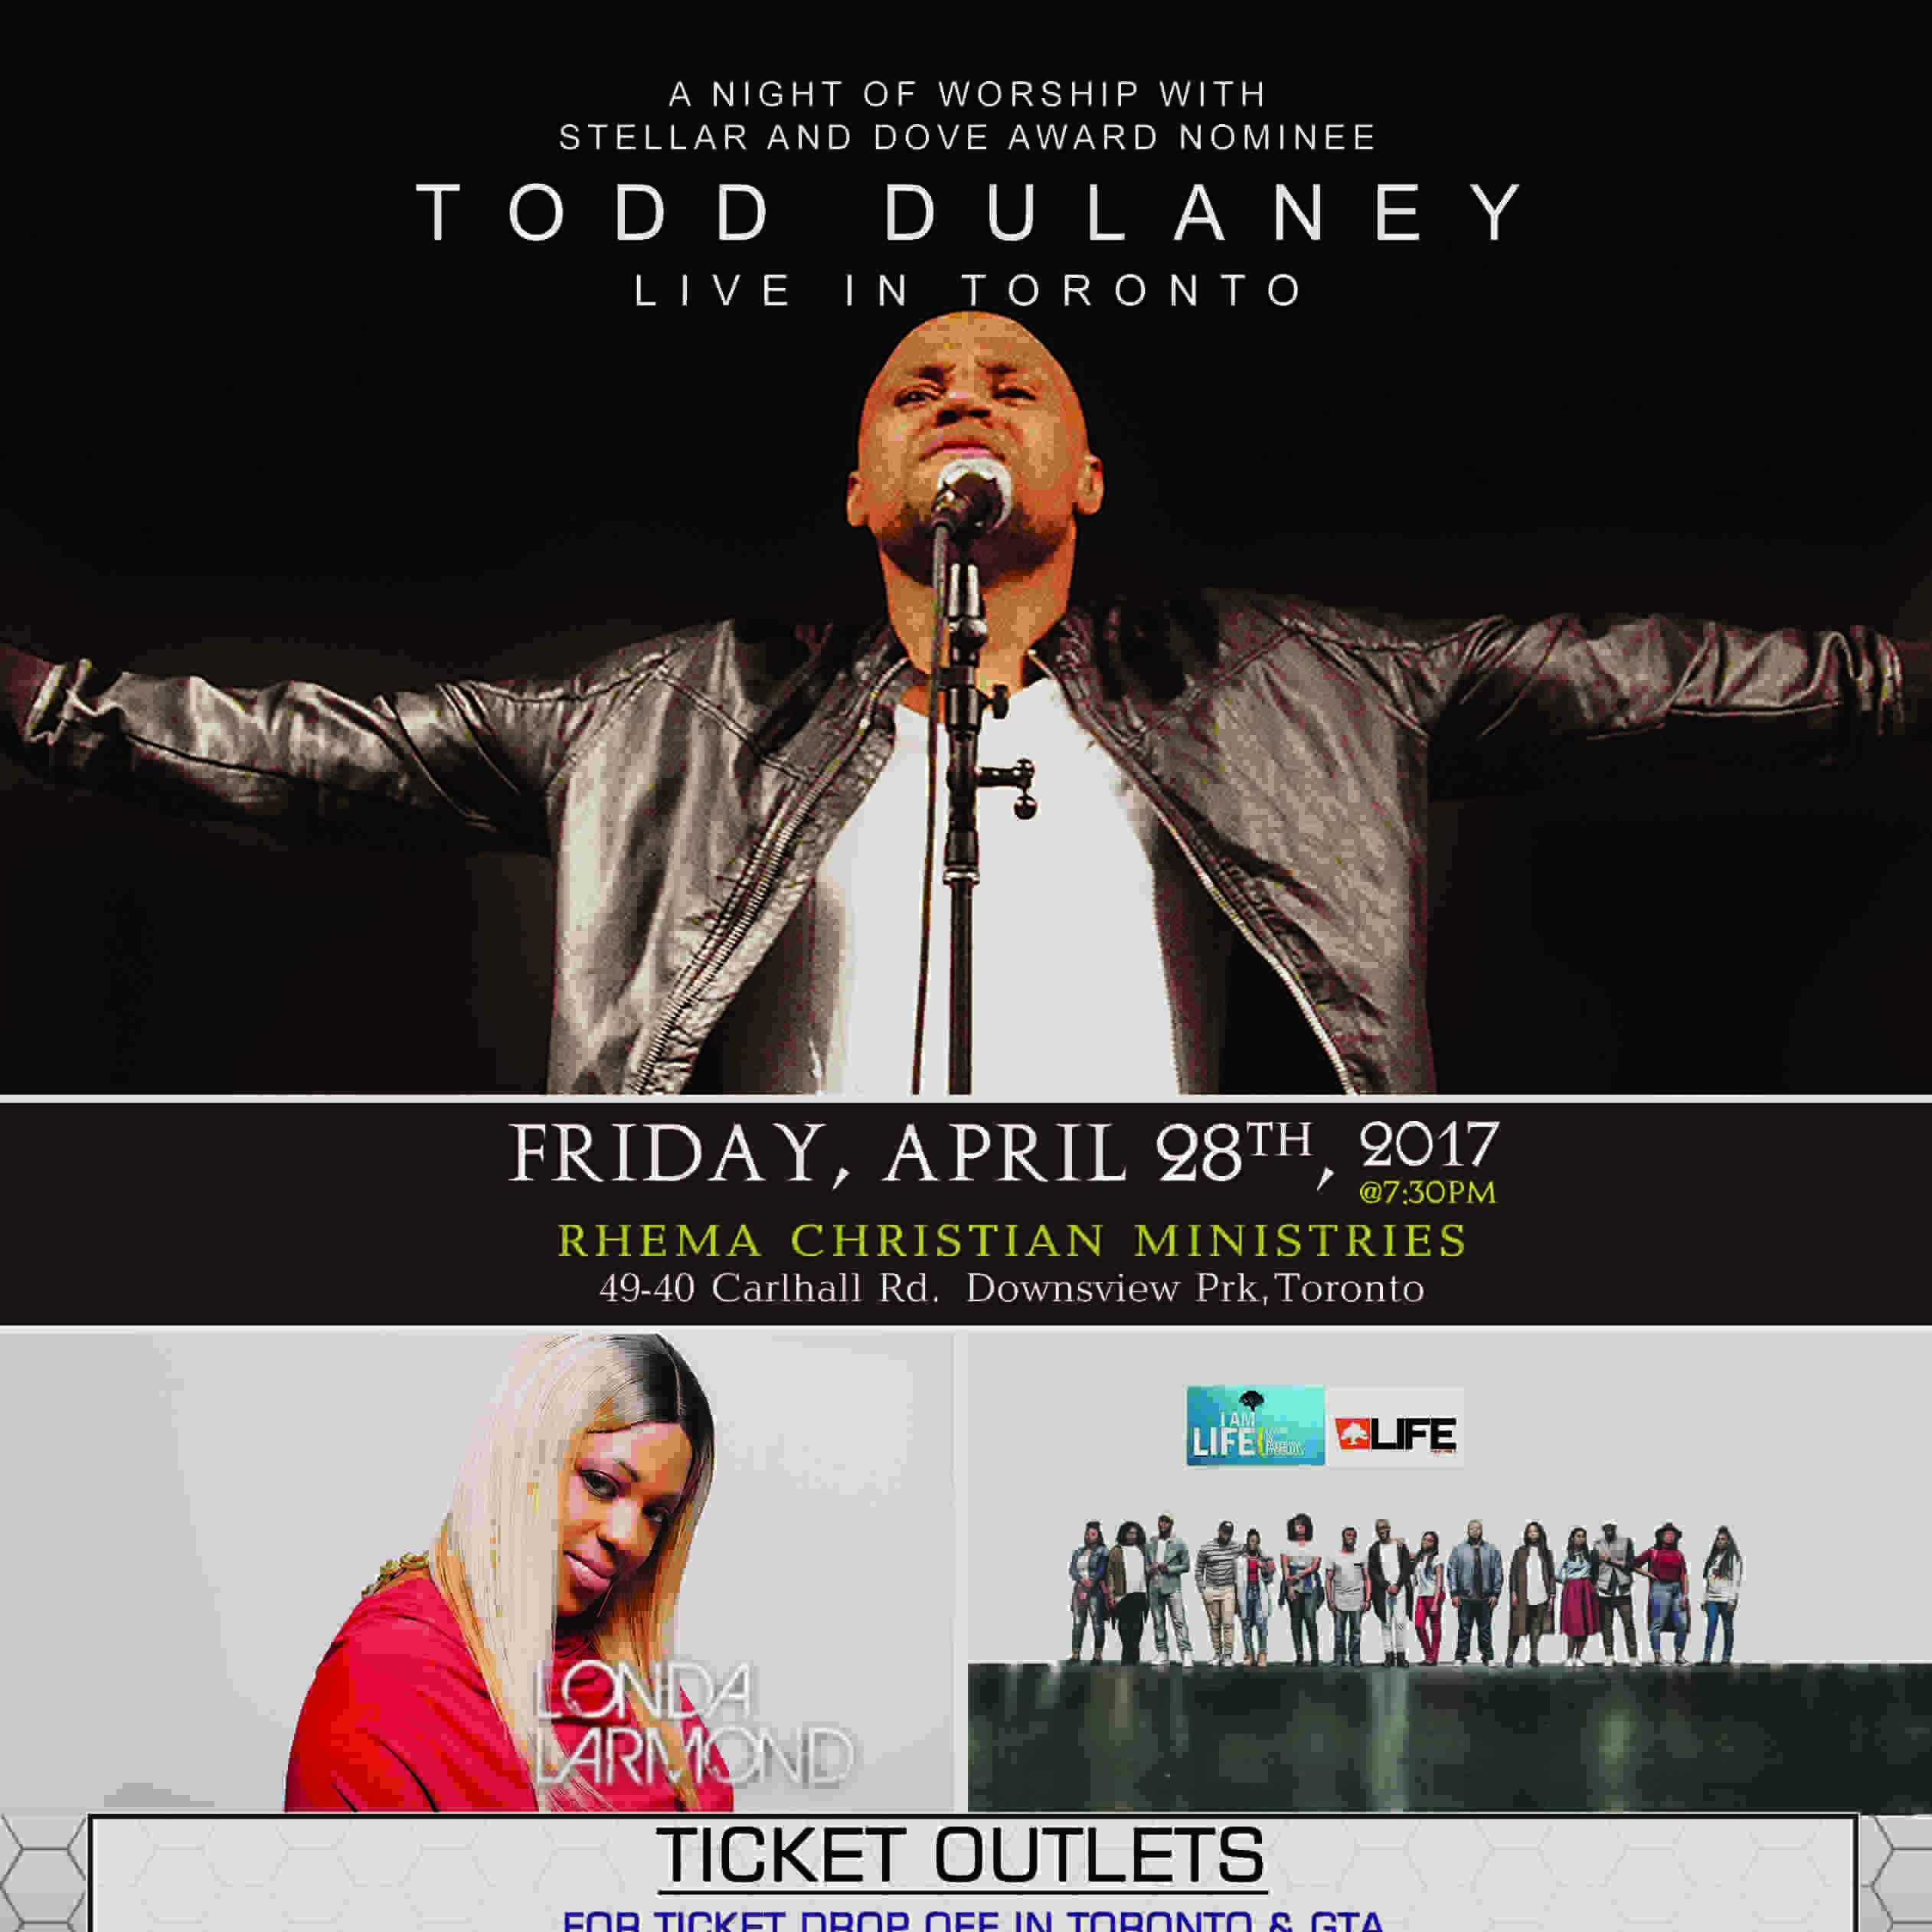 TODD DULANEY LIVE IN TORONTO